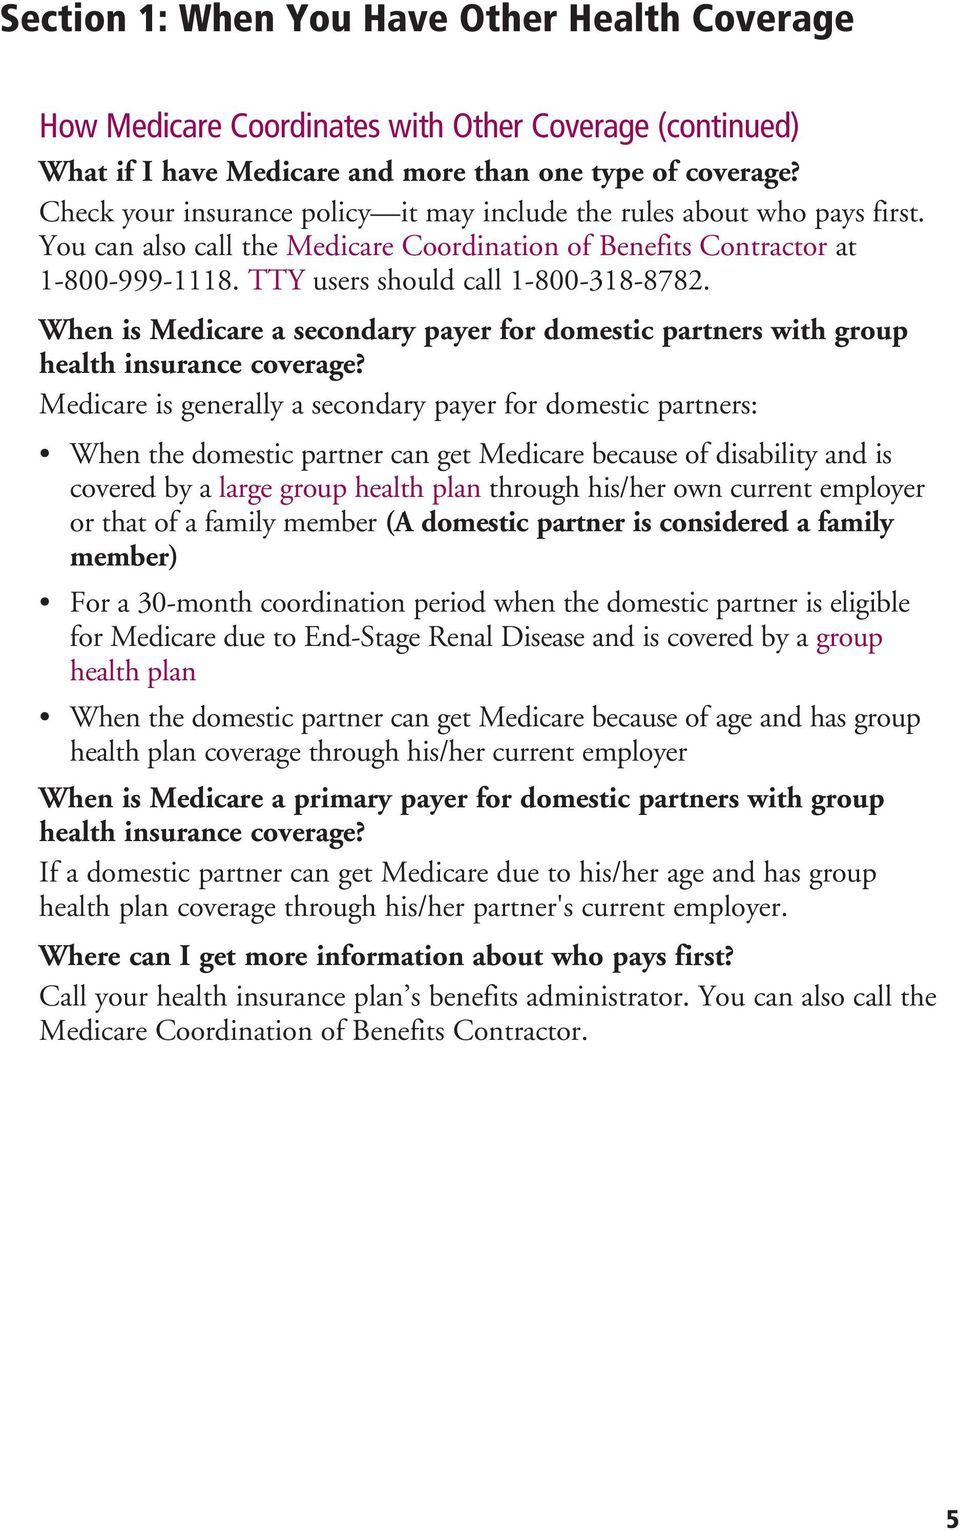 When is Medicare a secondary payer for domestic partners with group health insurance coverage?